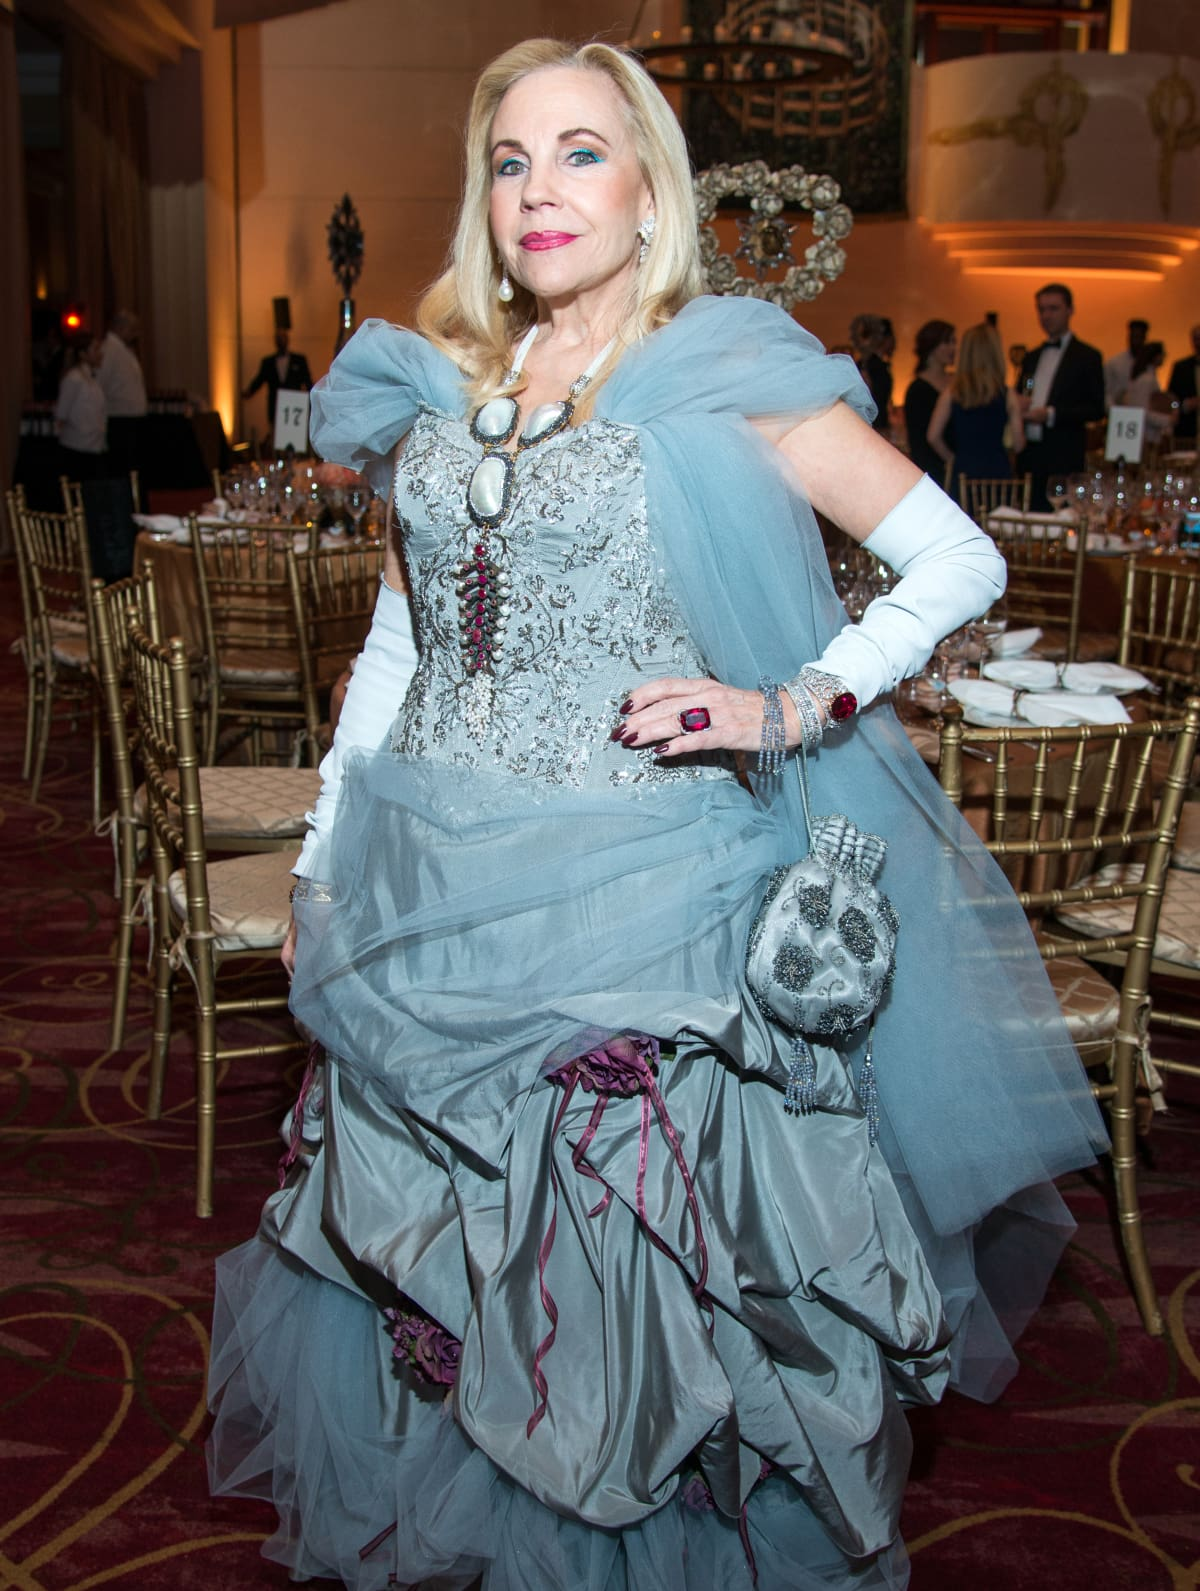 Houston, Ballet Ball gowns, Feb 2017, Dr. Carolyn Farb in vintage Vicki Tiel.